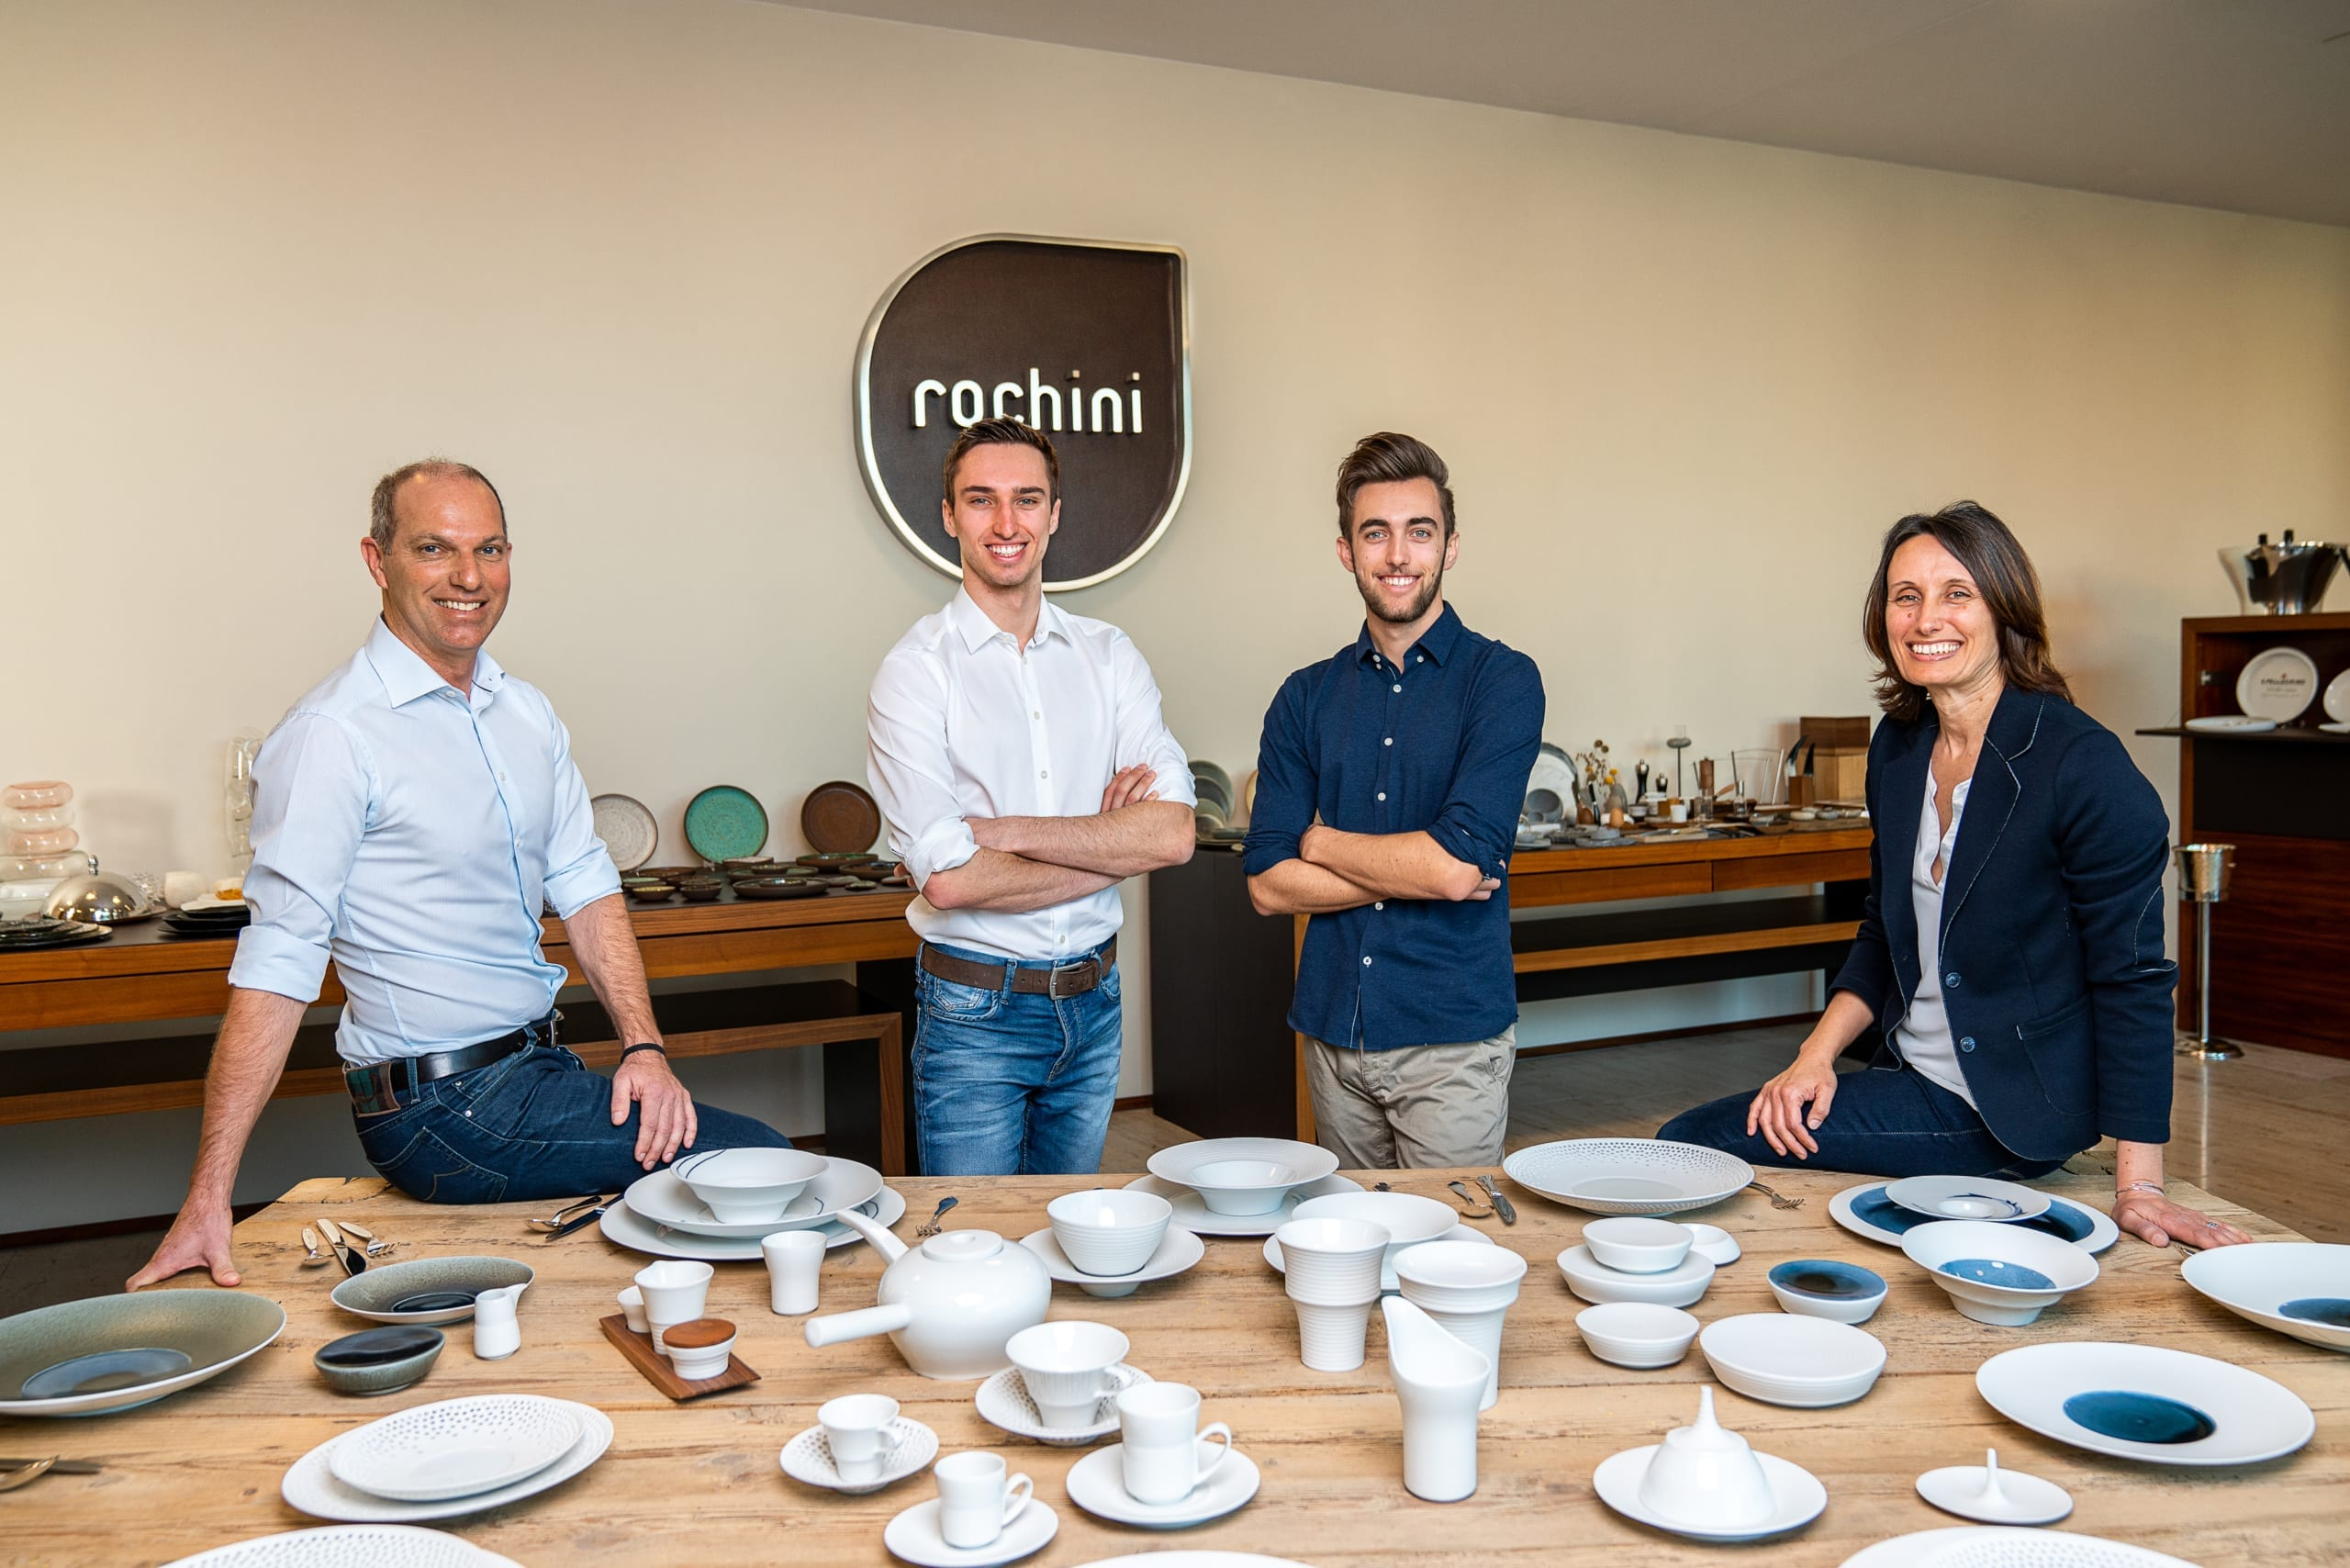 Rochini Fam 005 scaled The Rochini family   we do everything for finest tabletop